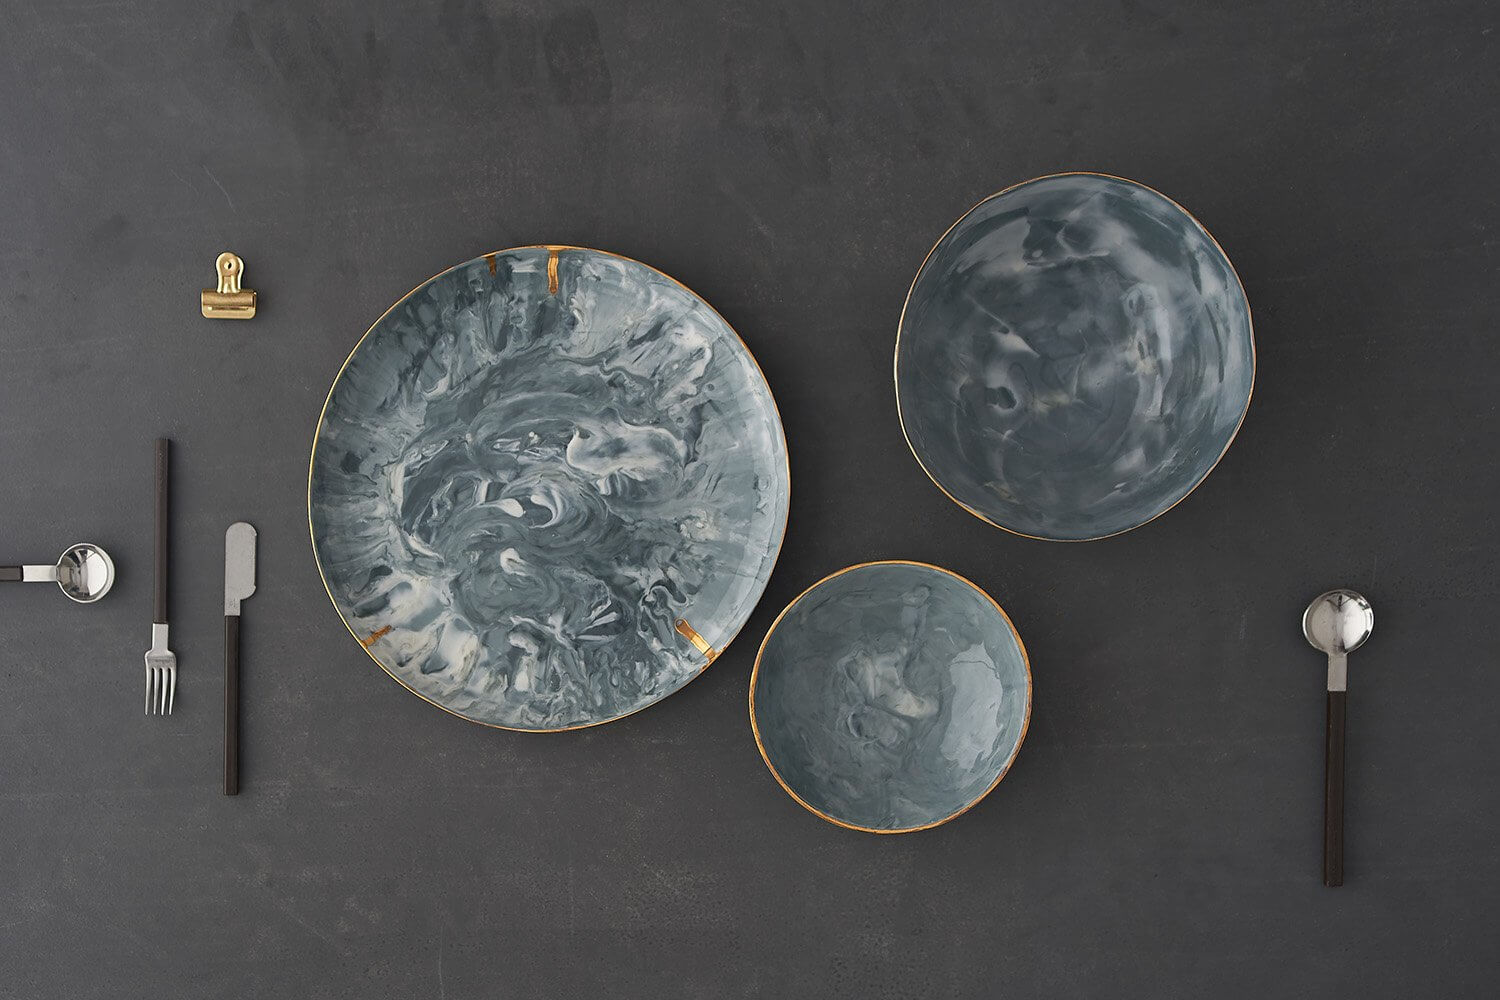 Overhead flatlay style photograph of handmade ceramics plates and bowls by Febbie Day Ceramics